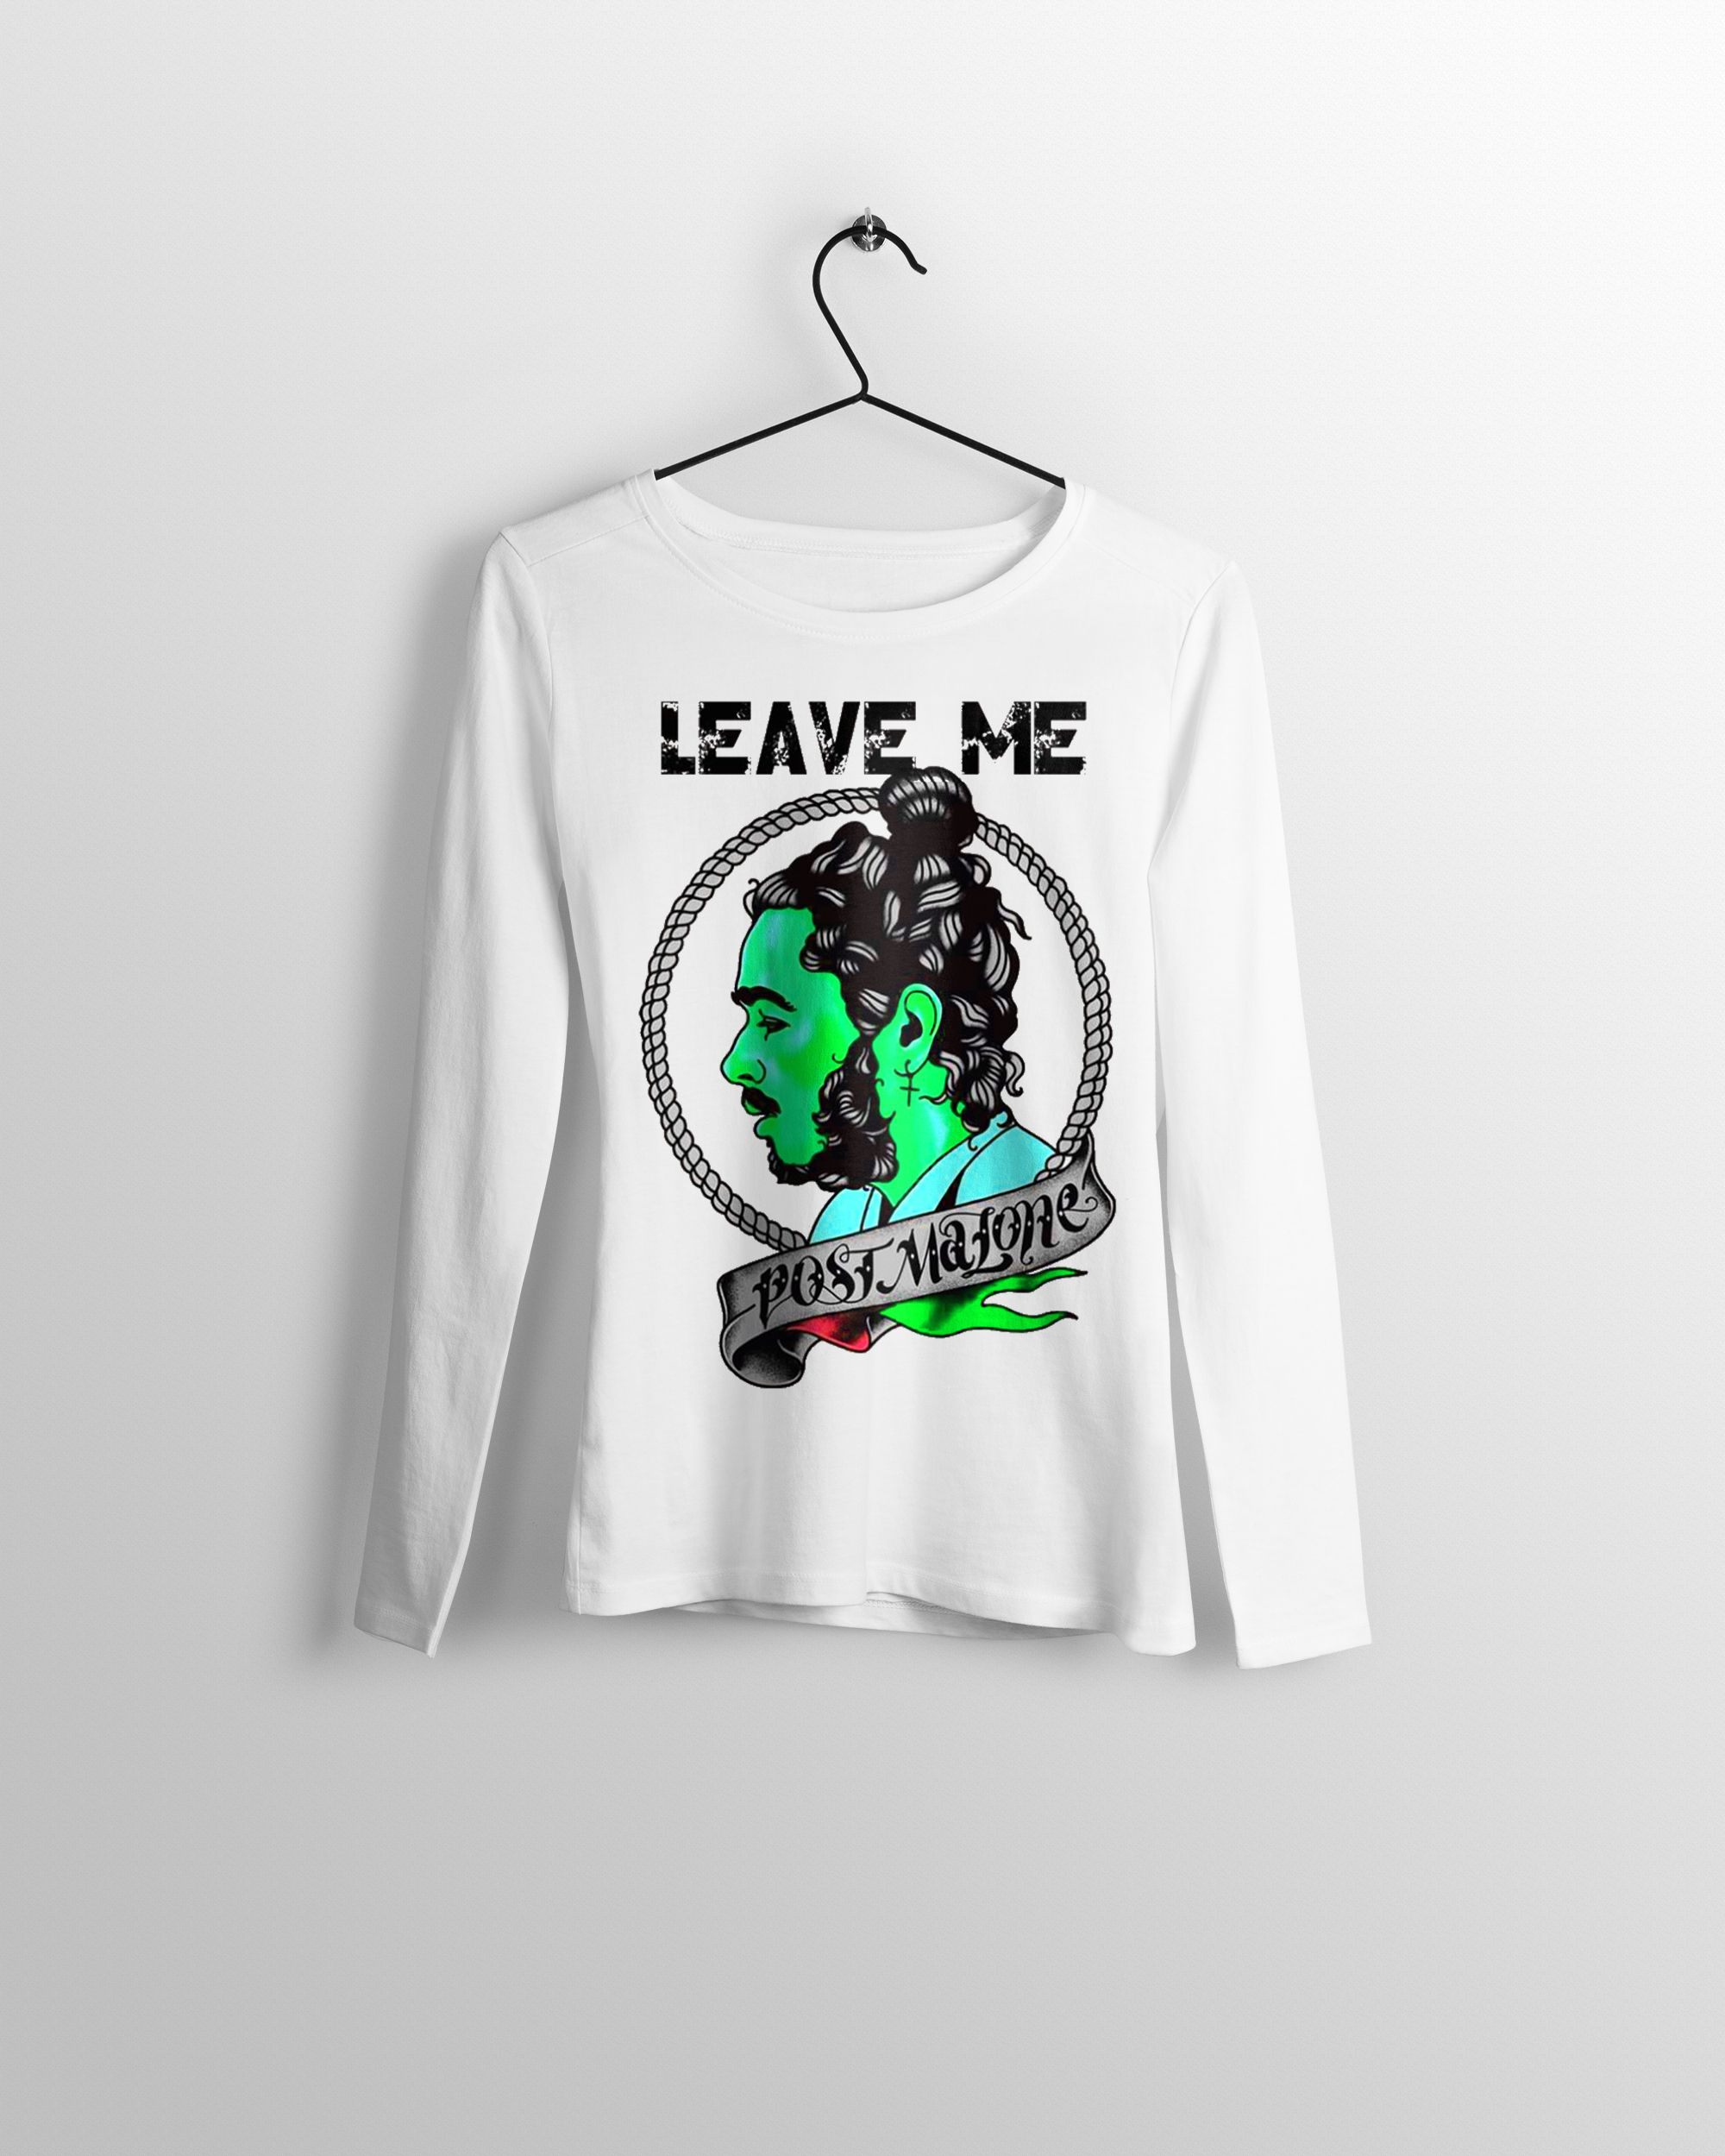 Post Malone Leave: Post Malone Leave Me Long Sleeve T Shirt